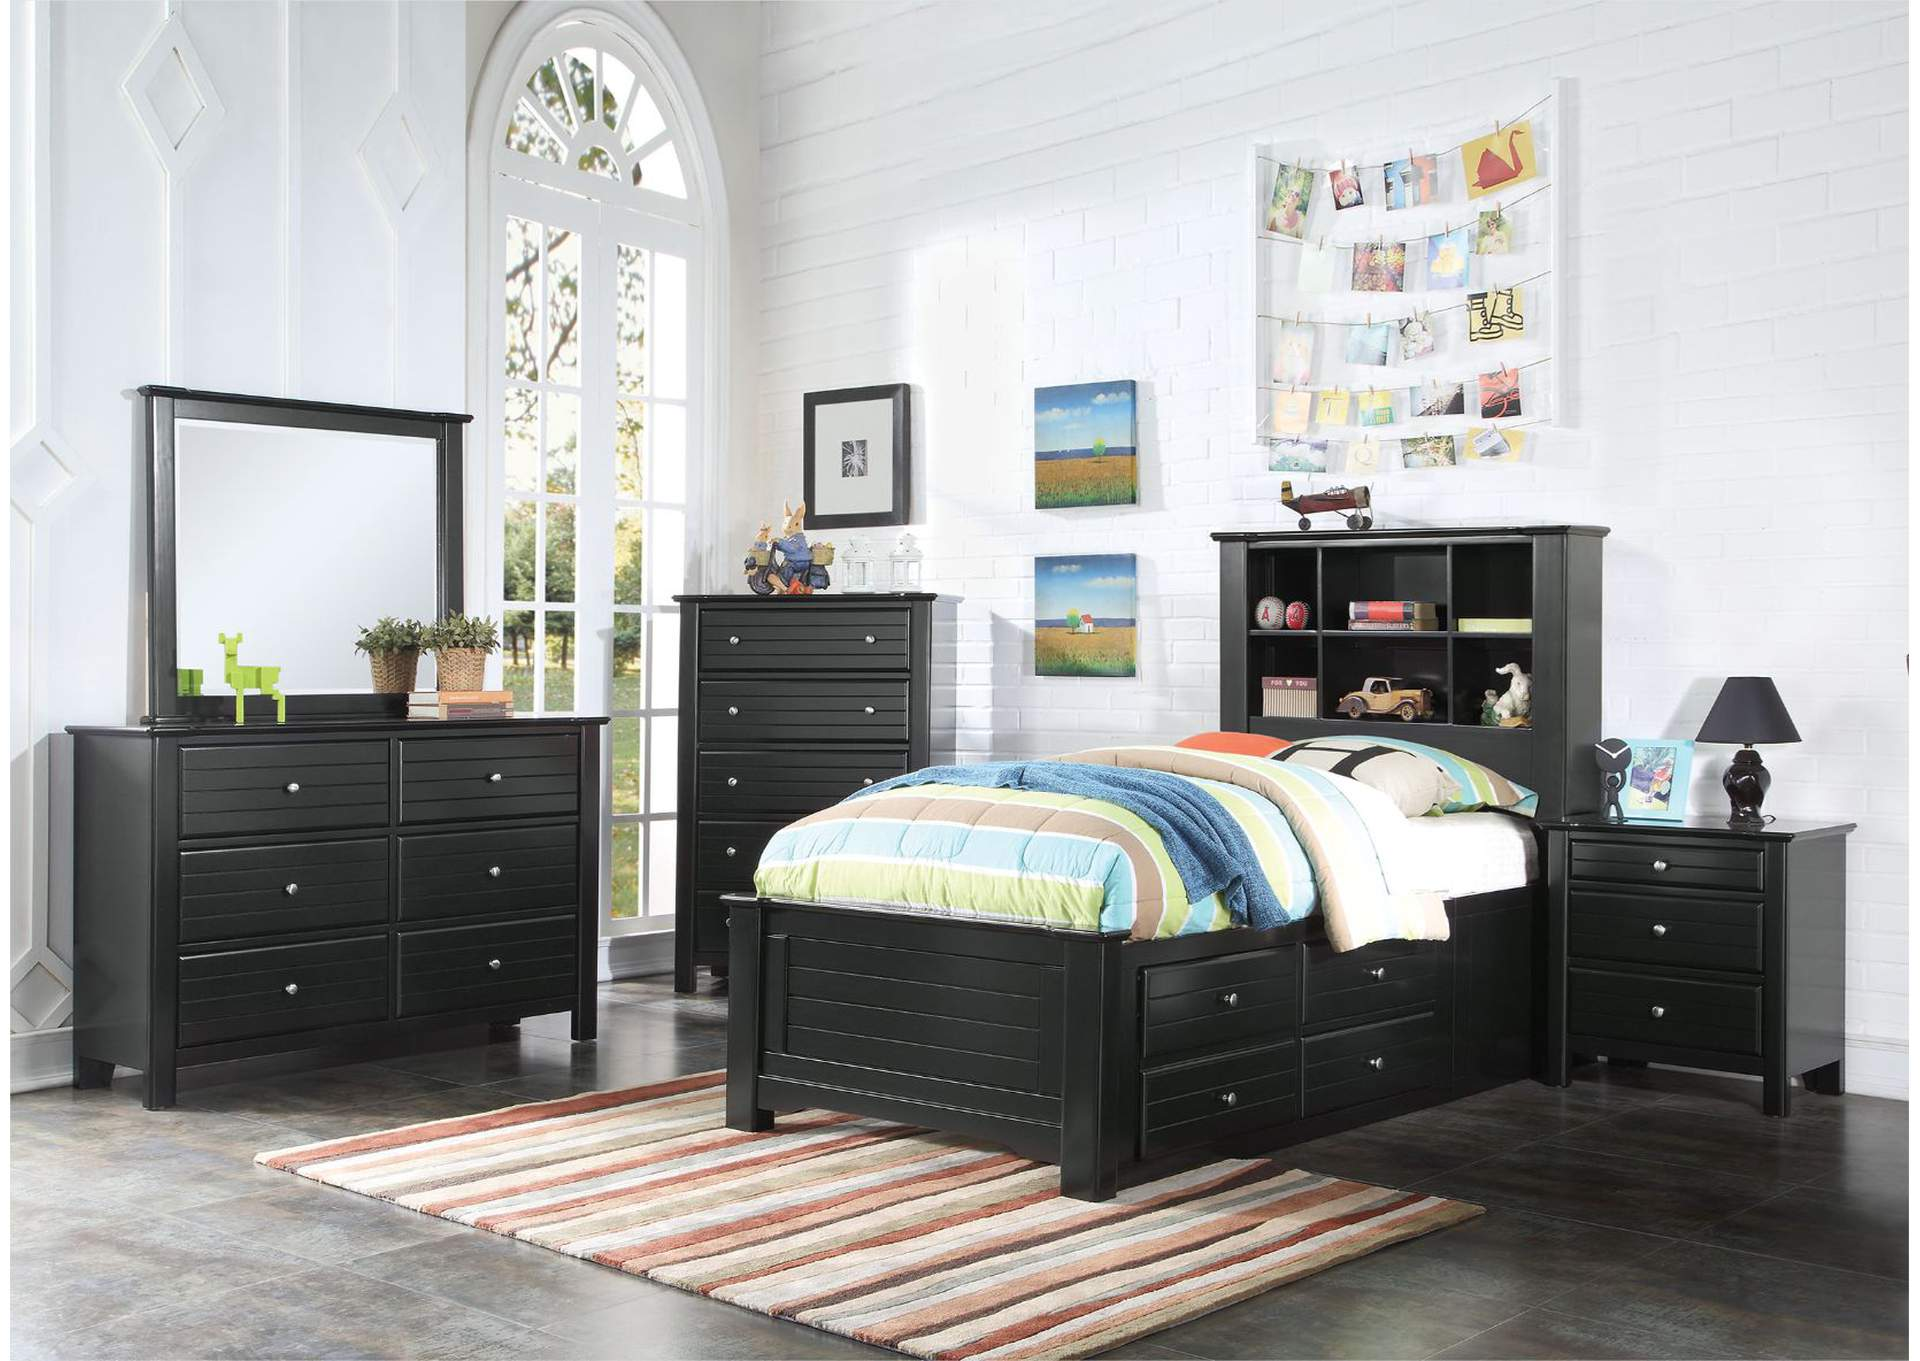 Mallowsea Black Twin Bed,Acme